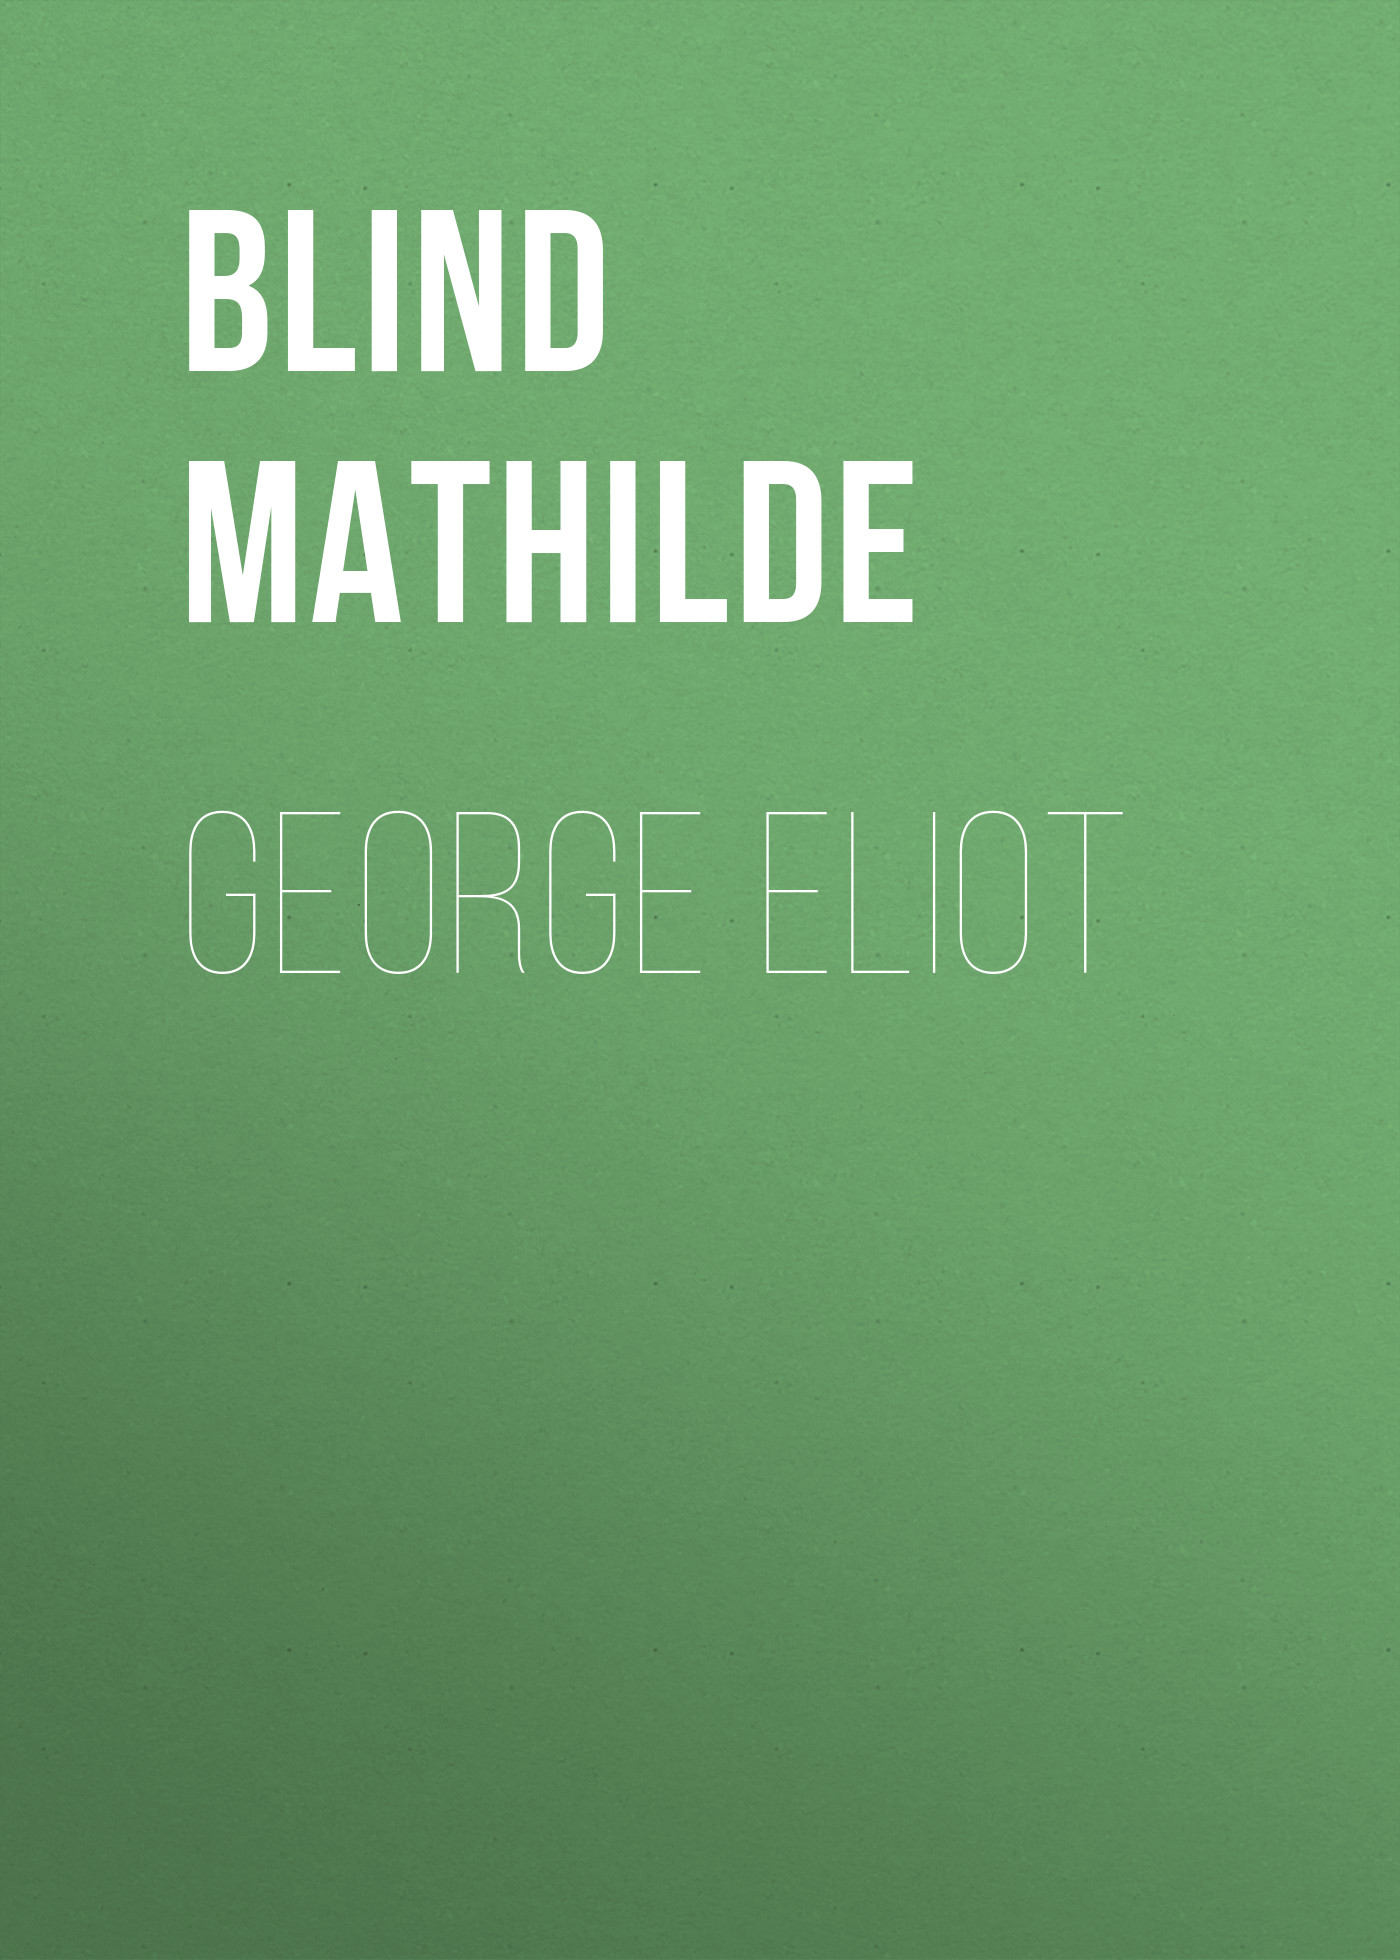 Blind Mathilde George Eliot mathilde plume футболка